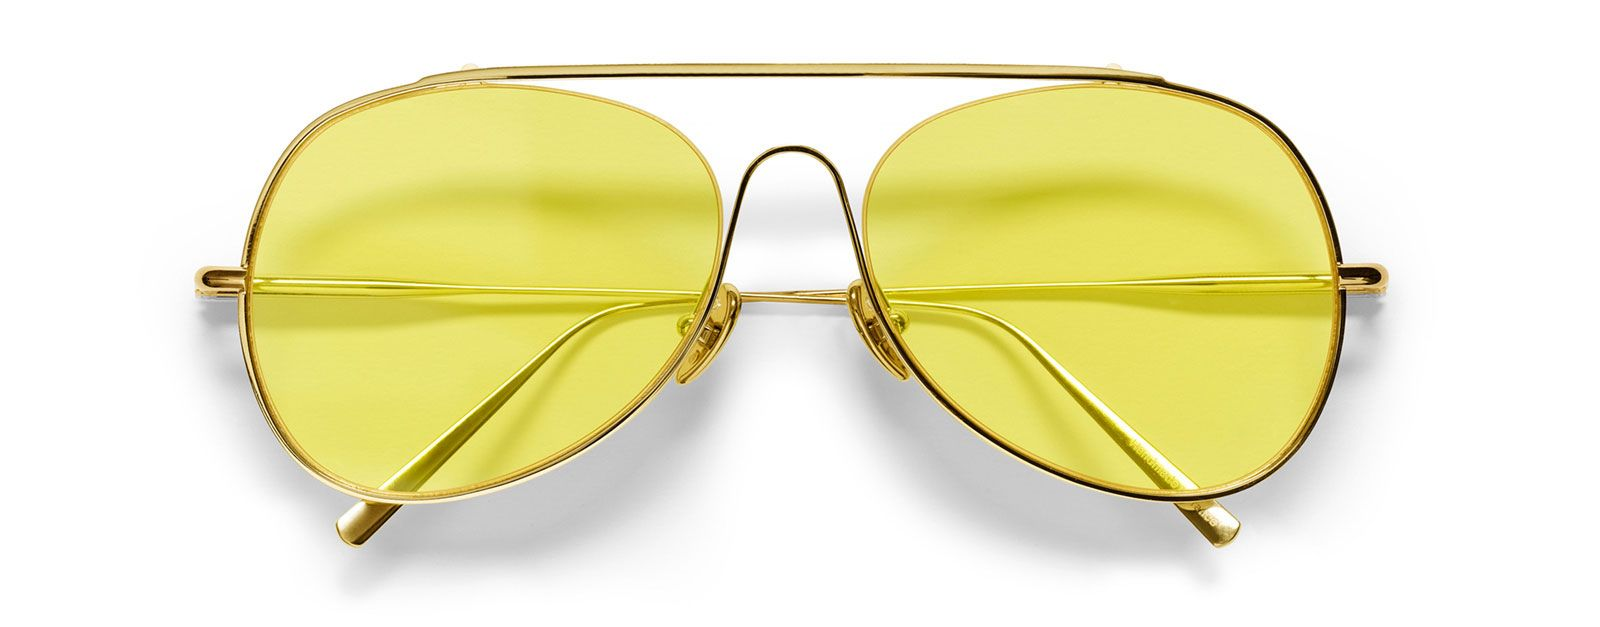 09b244afab Acne Studios - Eyewear DESKTOP Shop Ready to Wear